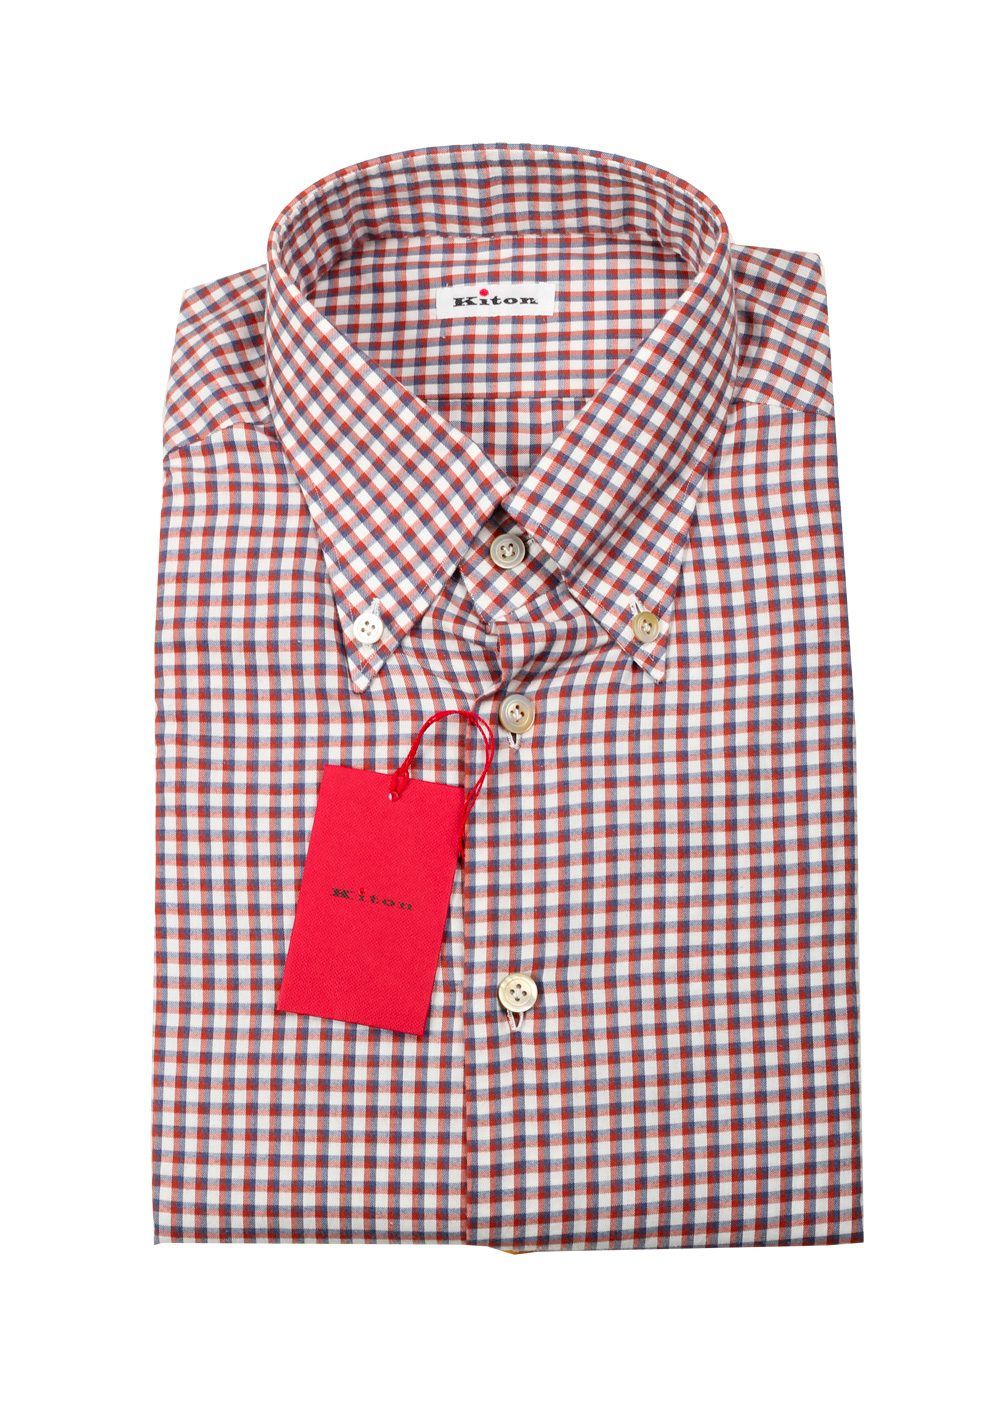 Kiton Checked White Red Gray Shirt Size 40 / 15,75 U.S. | Costume Limité